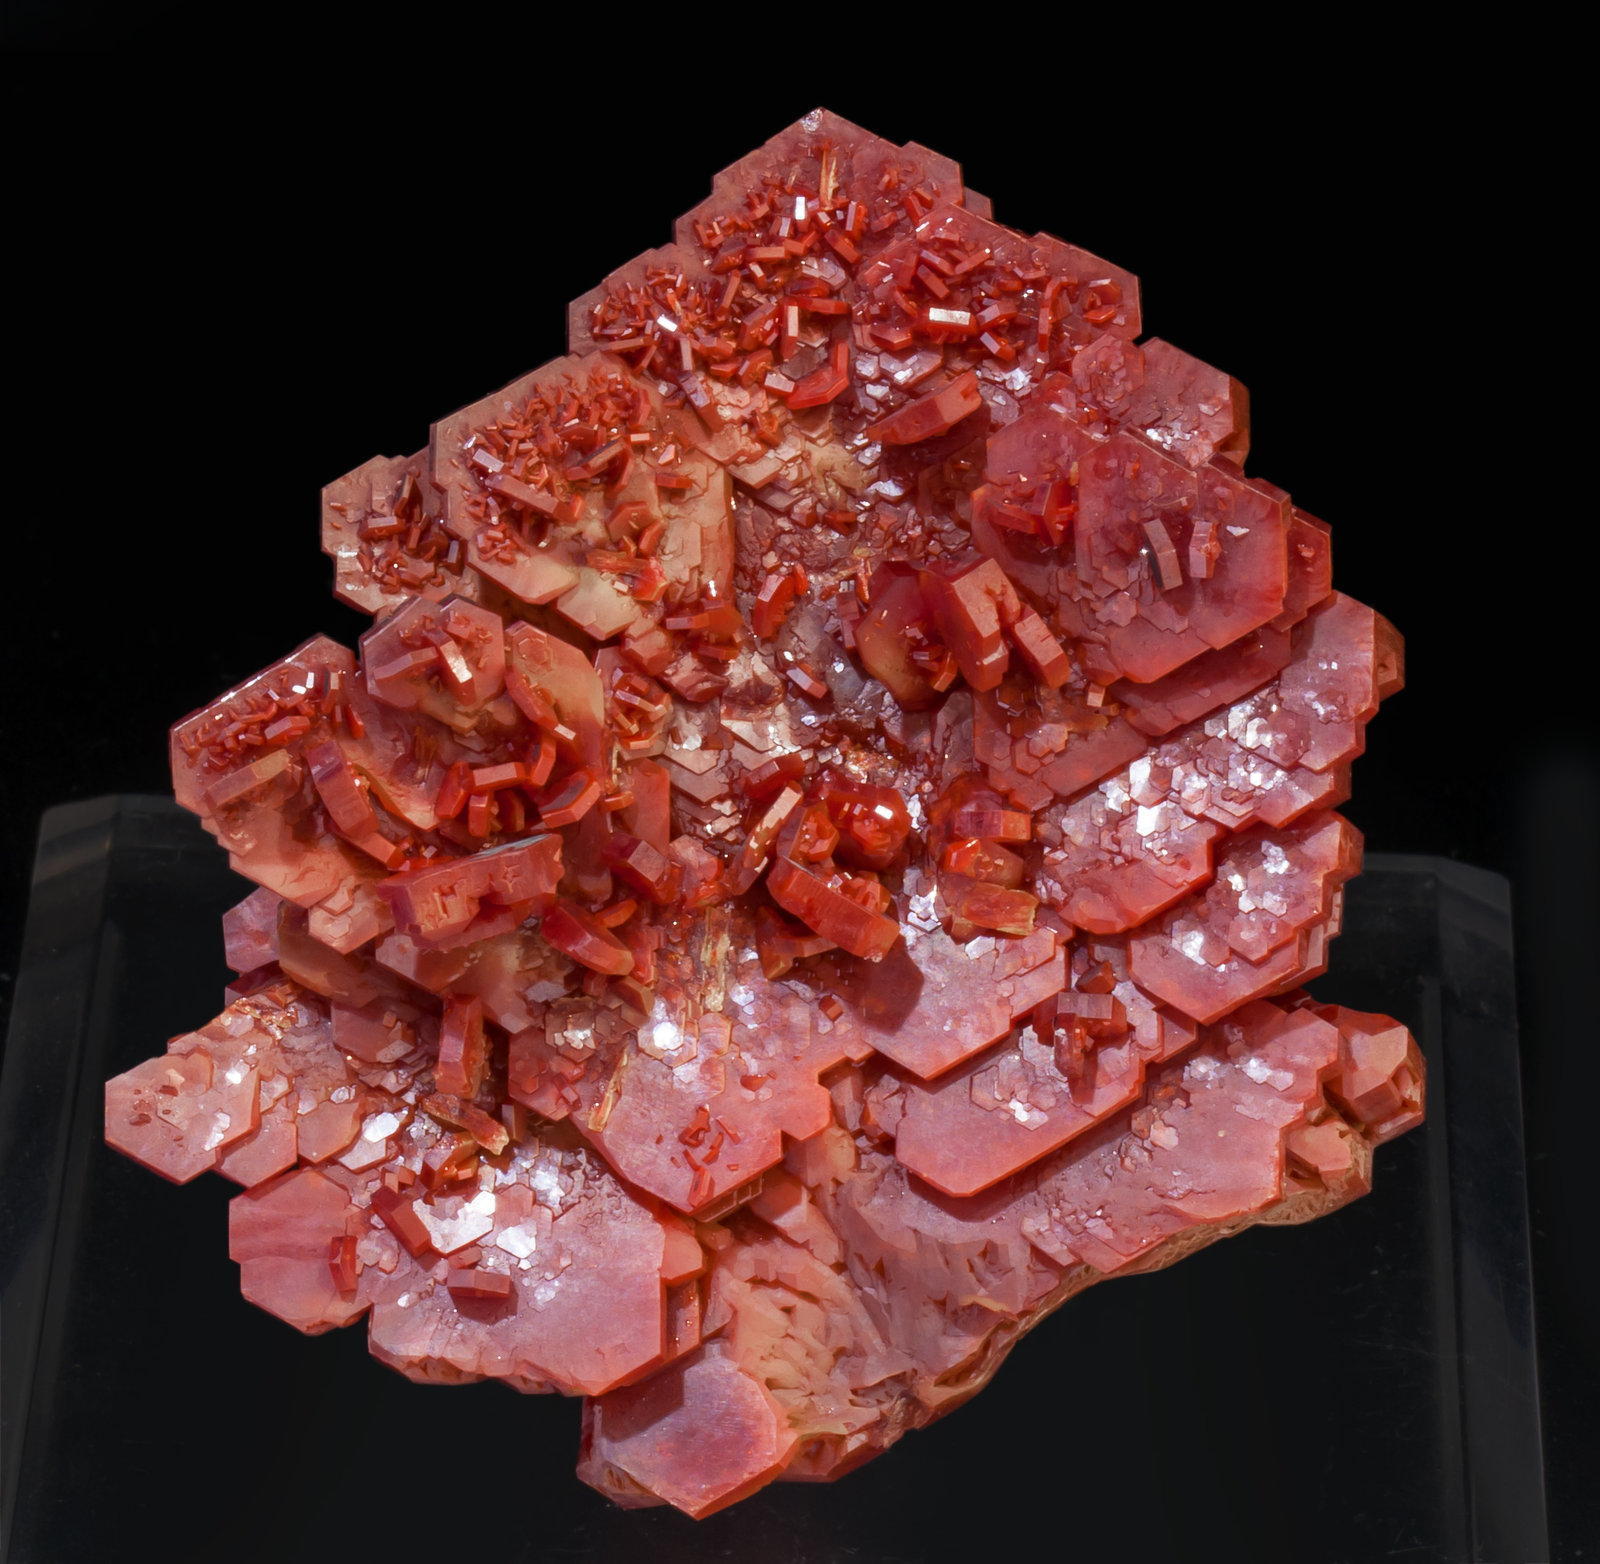 specimens/s_imagesAK6/Vanadinite-MZ27AK6r.jpg